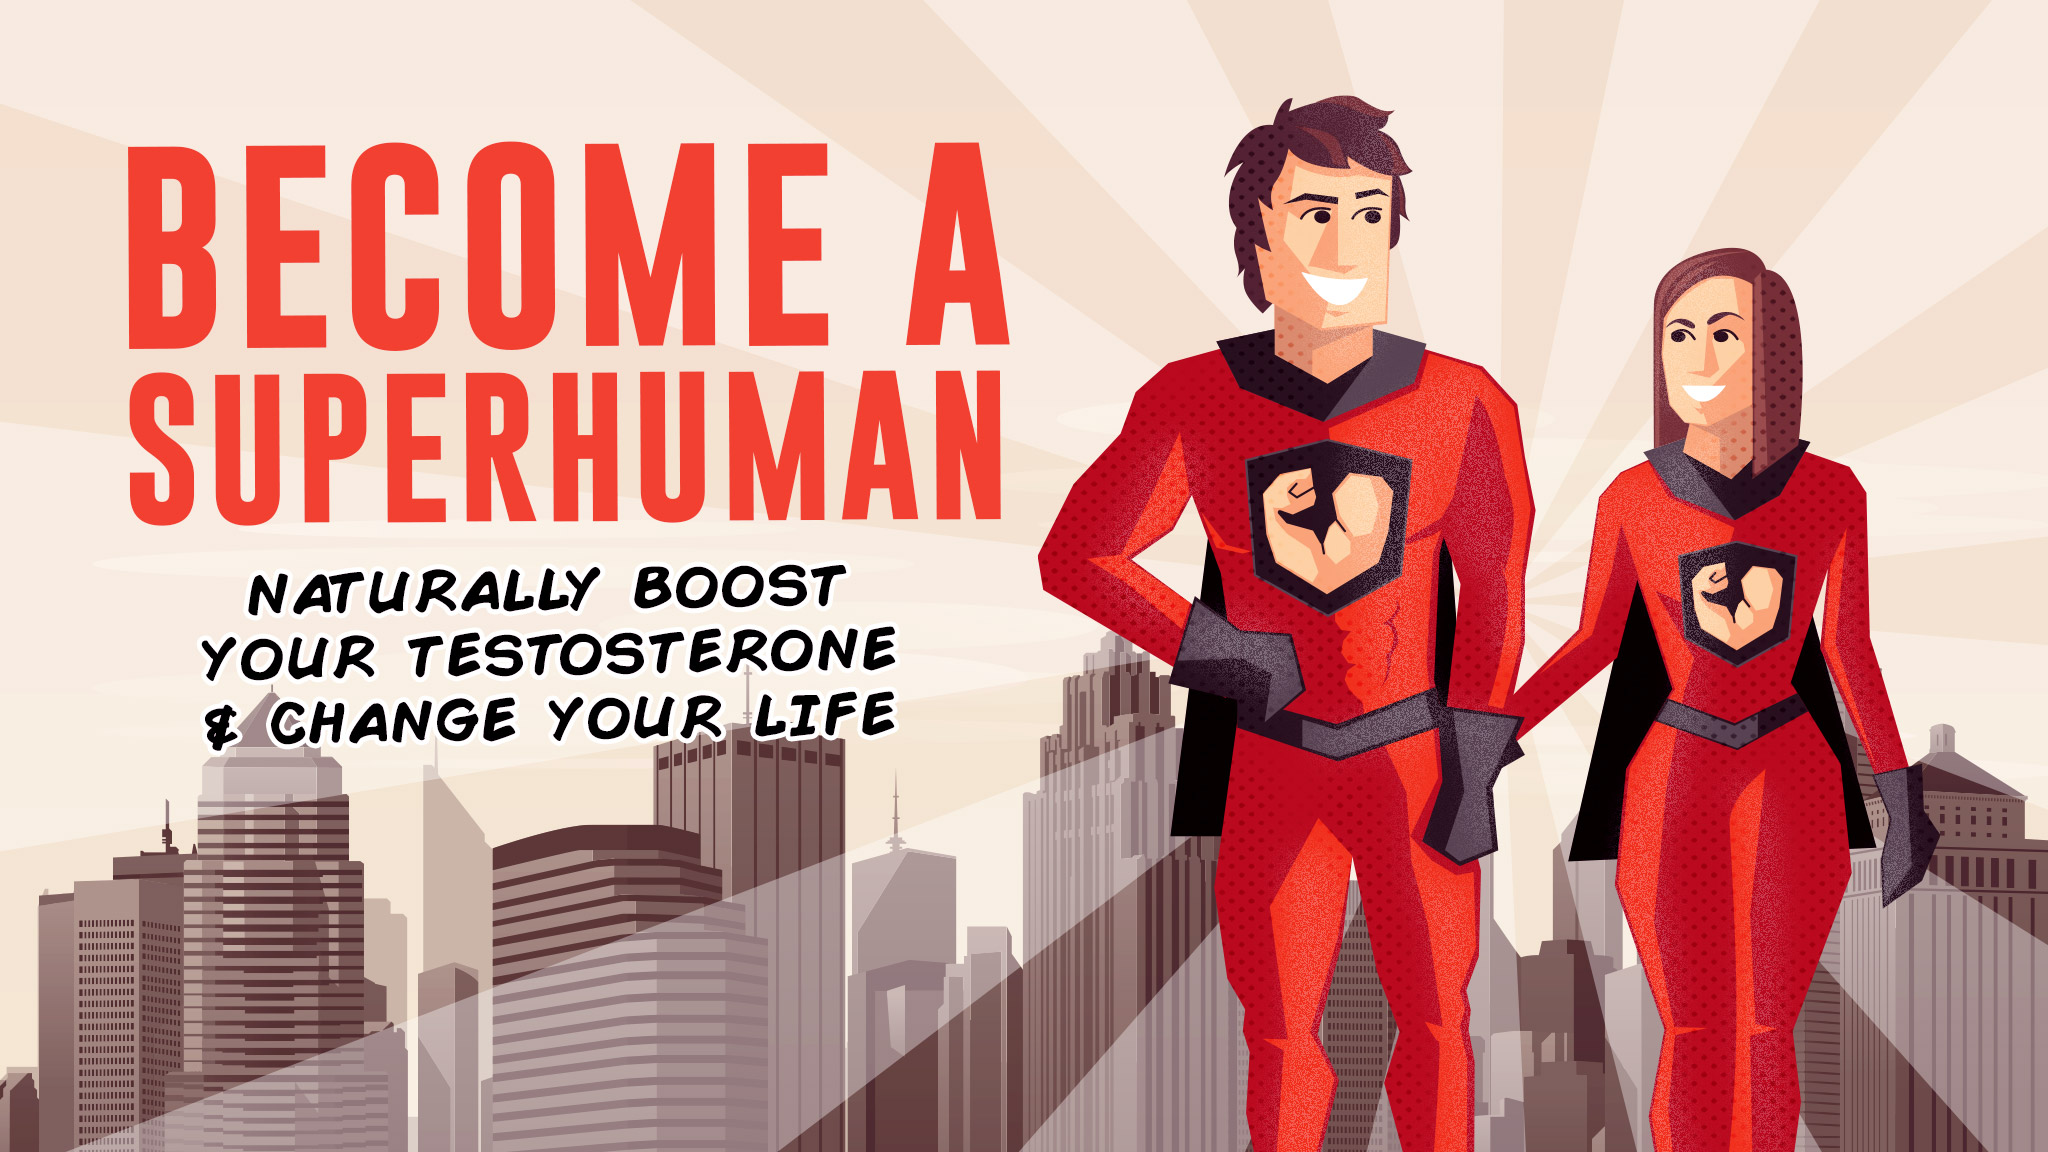 Become a SuperHuman: Naturally & Safely Boost Testosterone